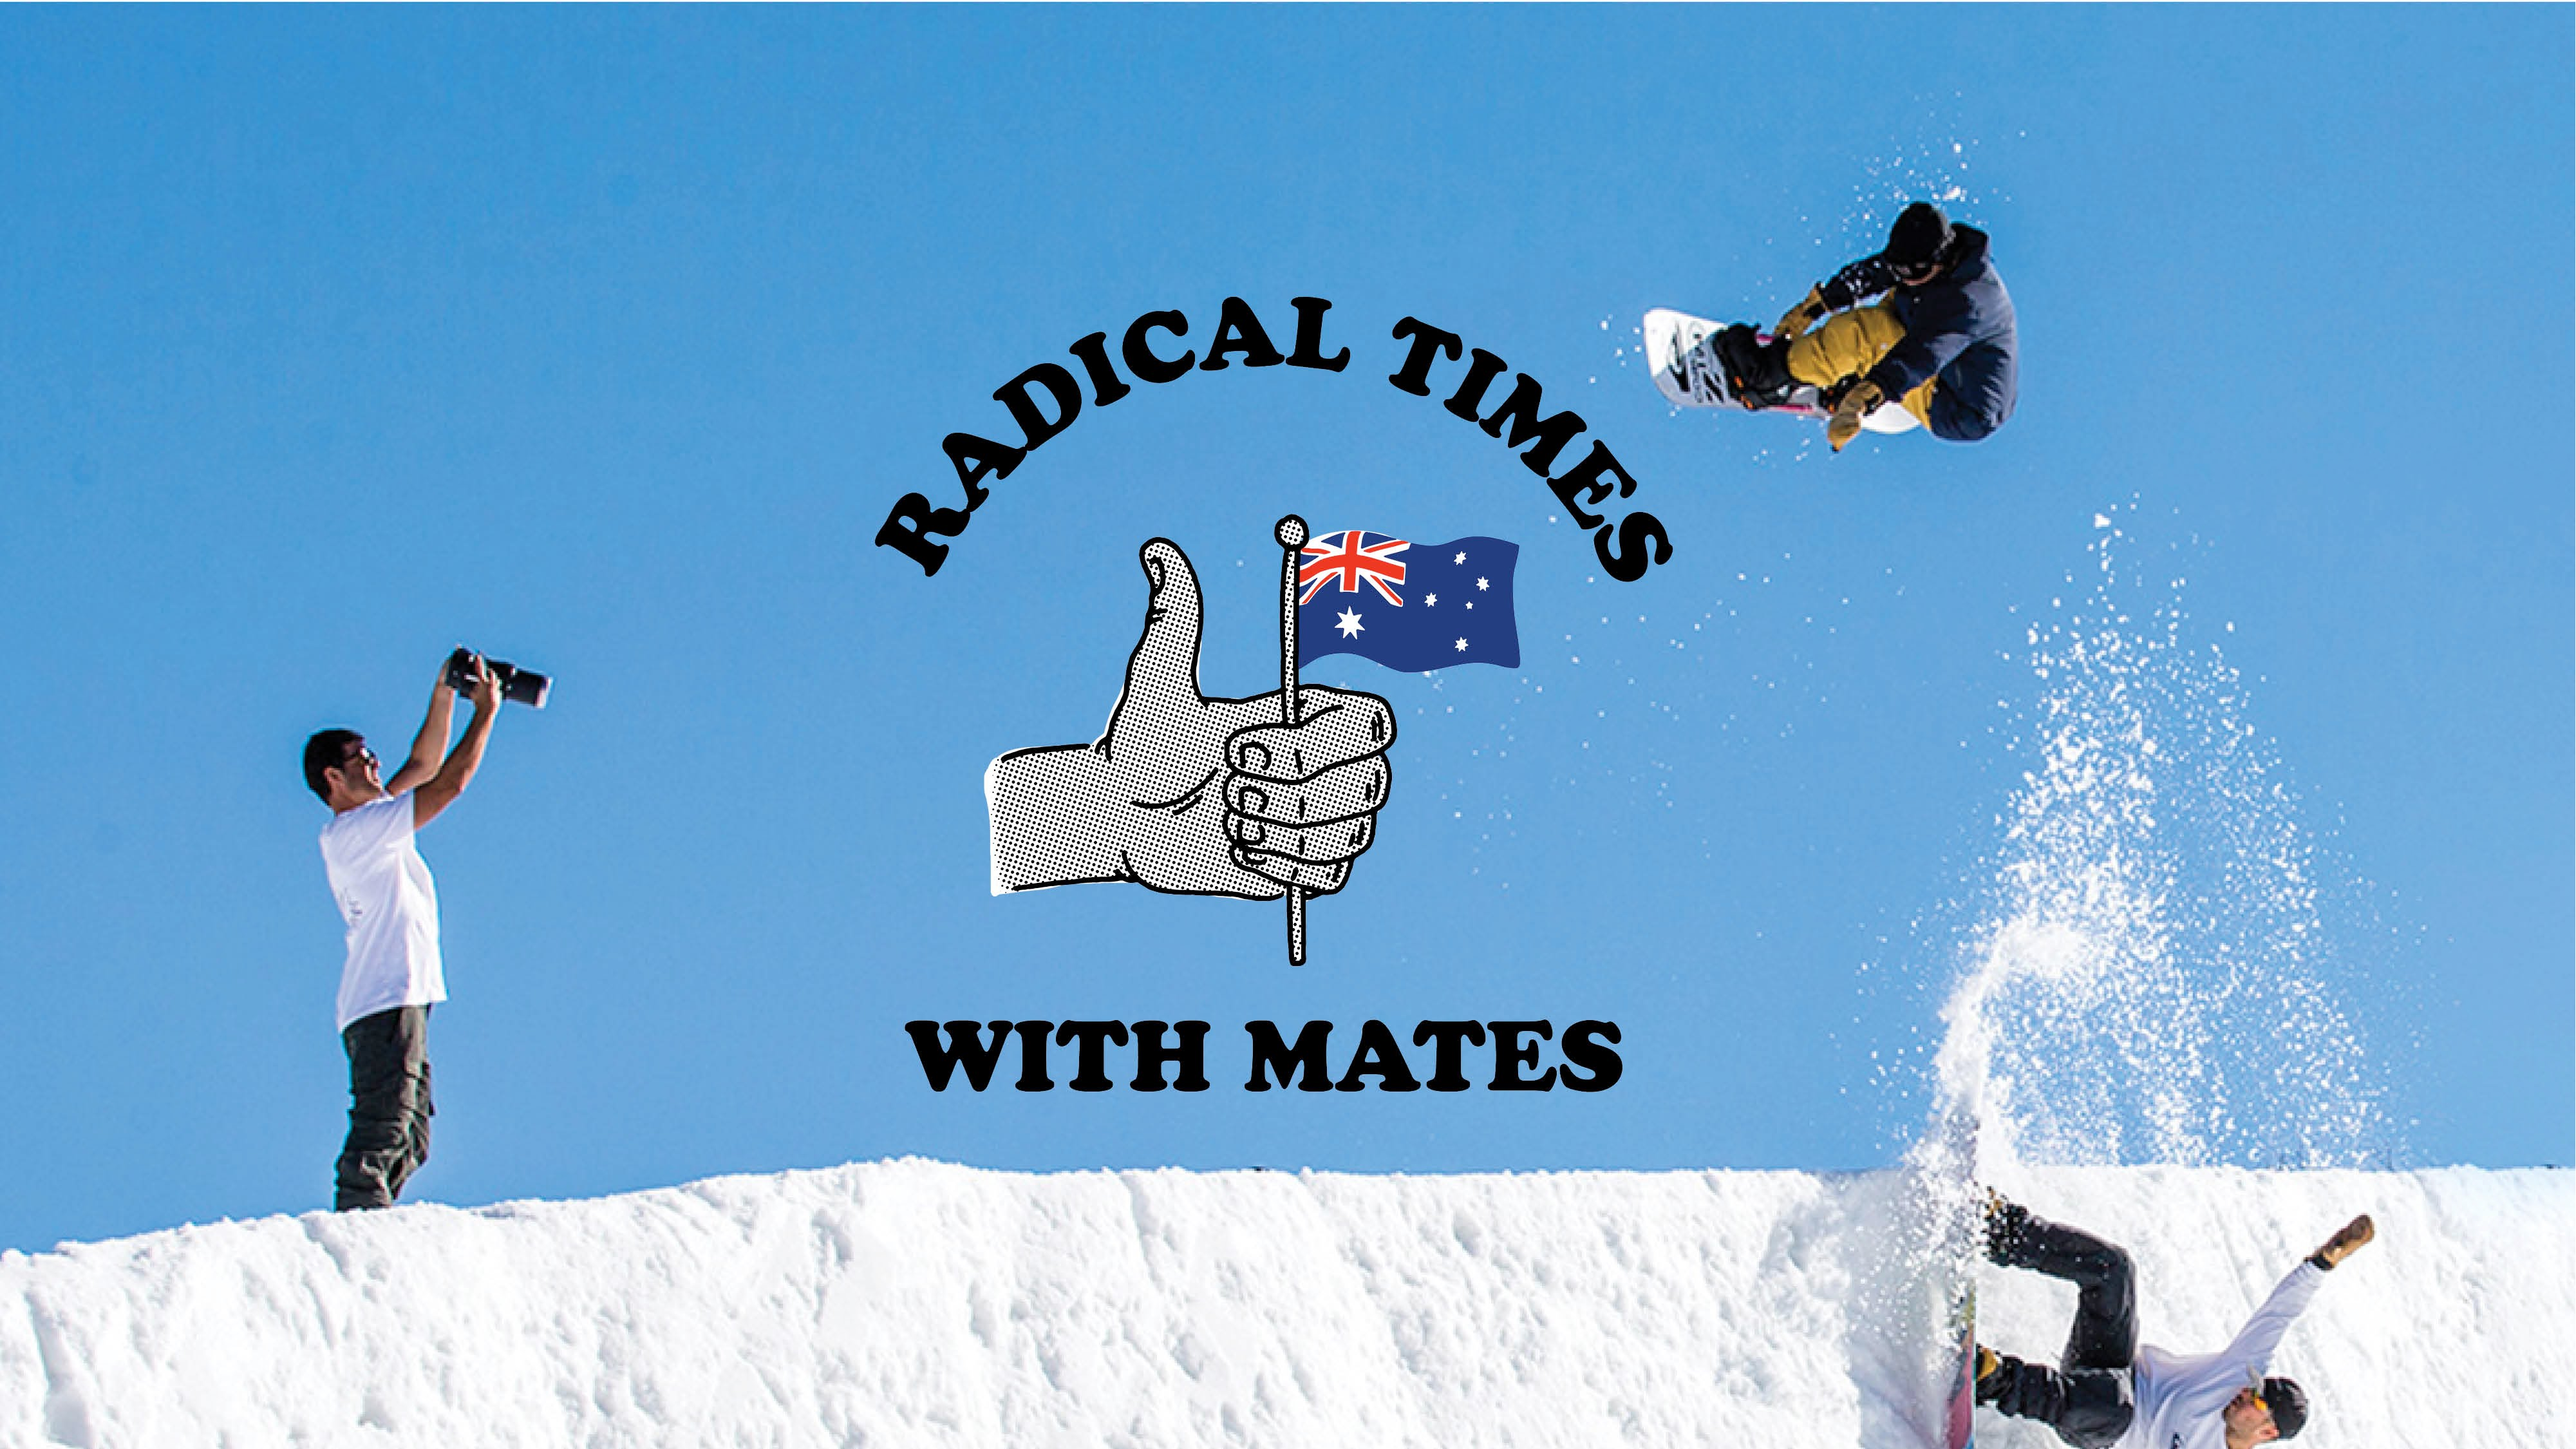 Quiksilver presents 'Radical Times with Mates'